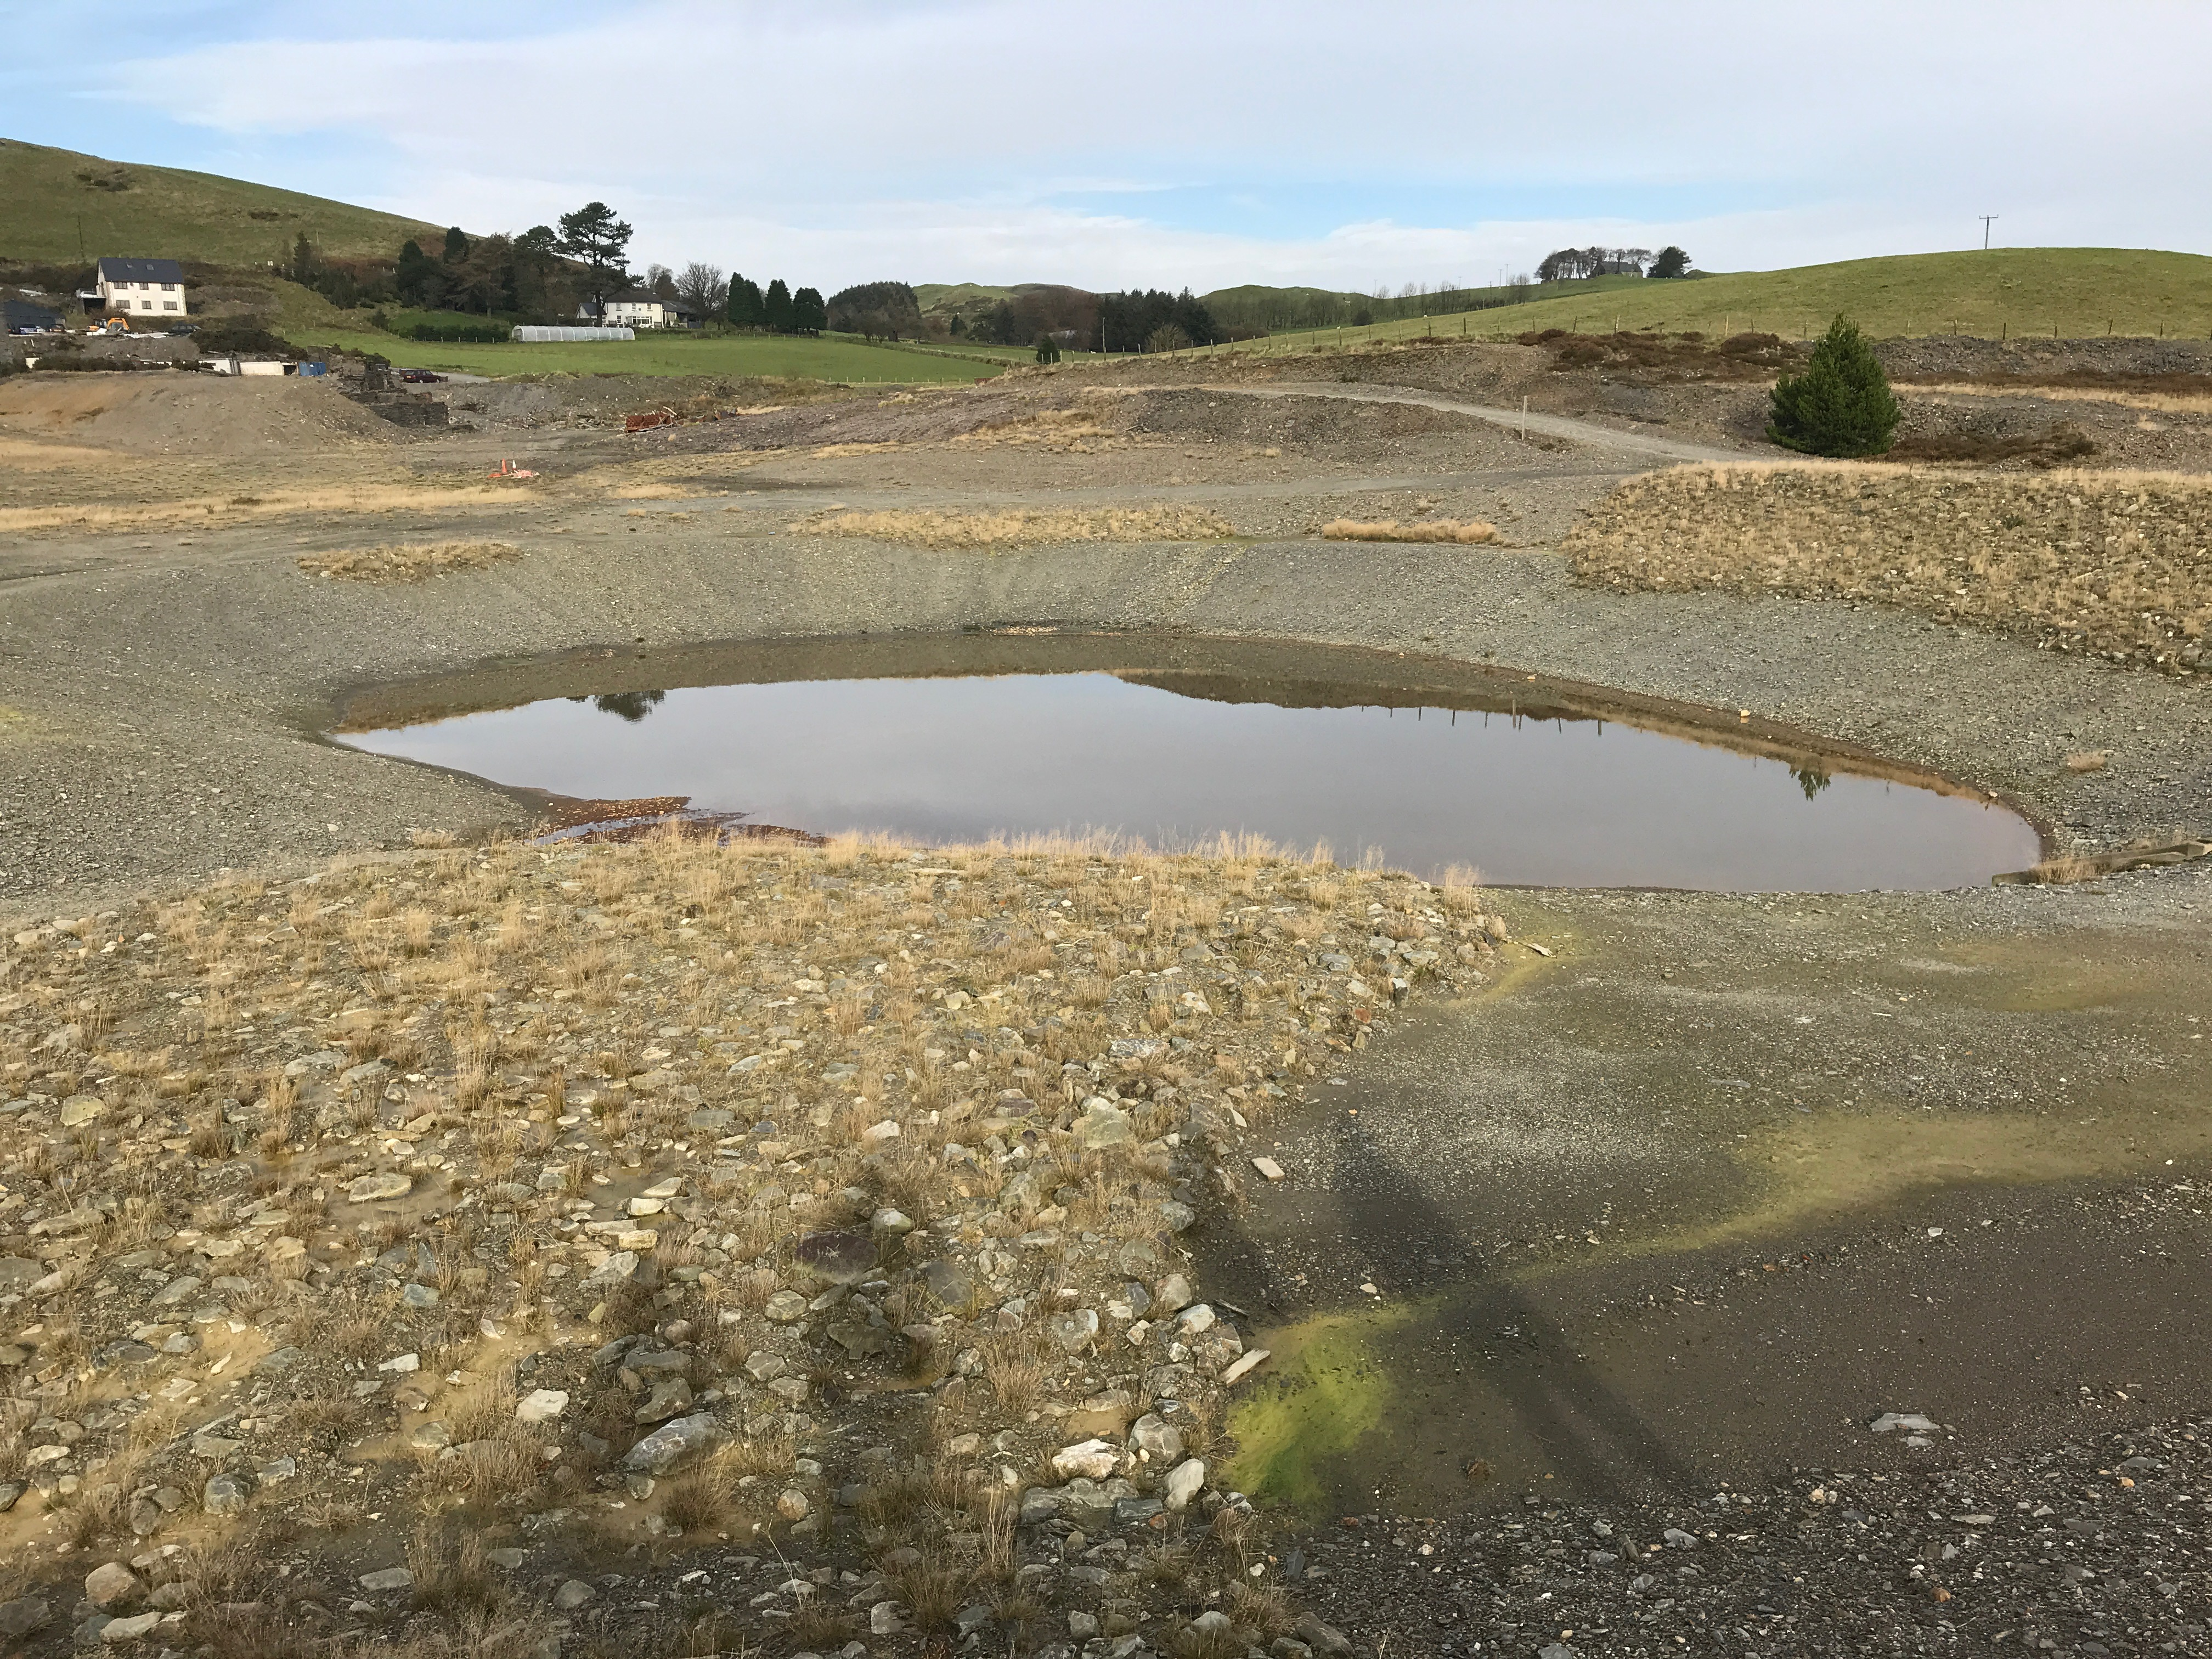 Balancing pond prior to treatment